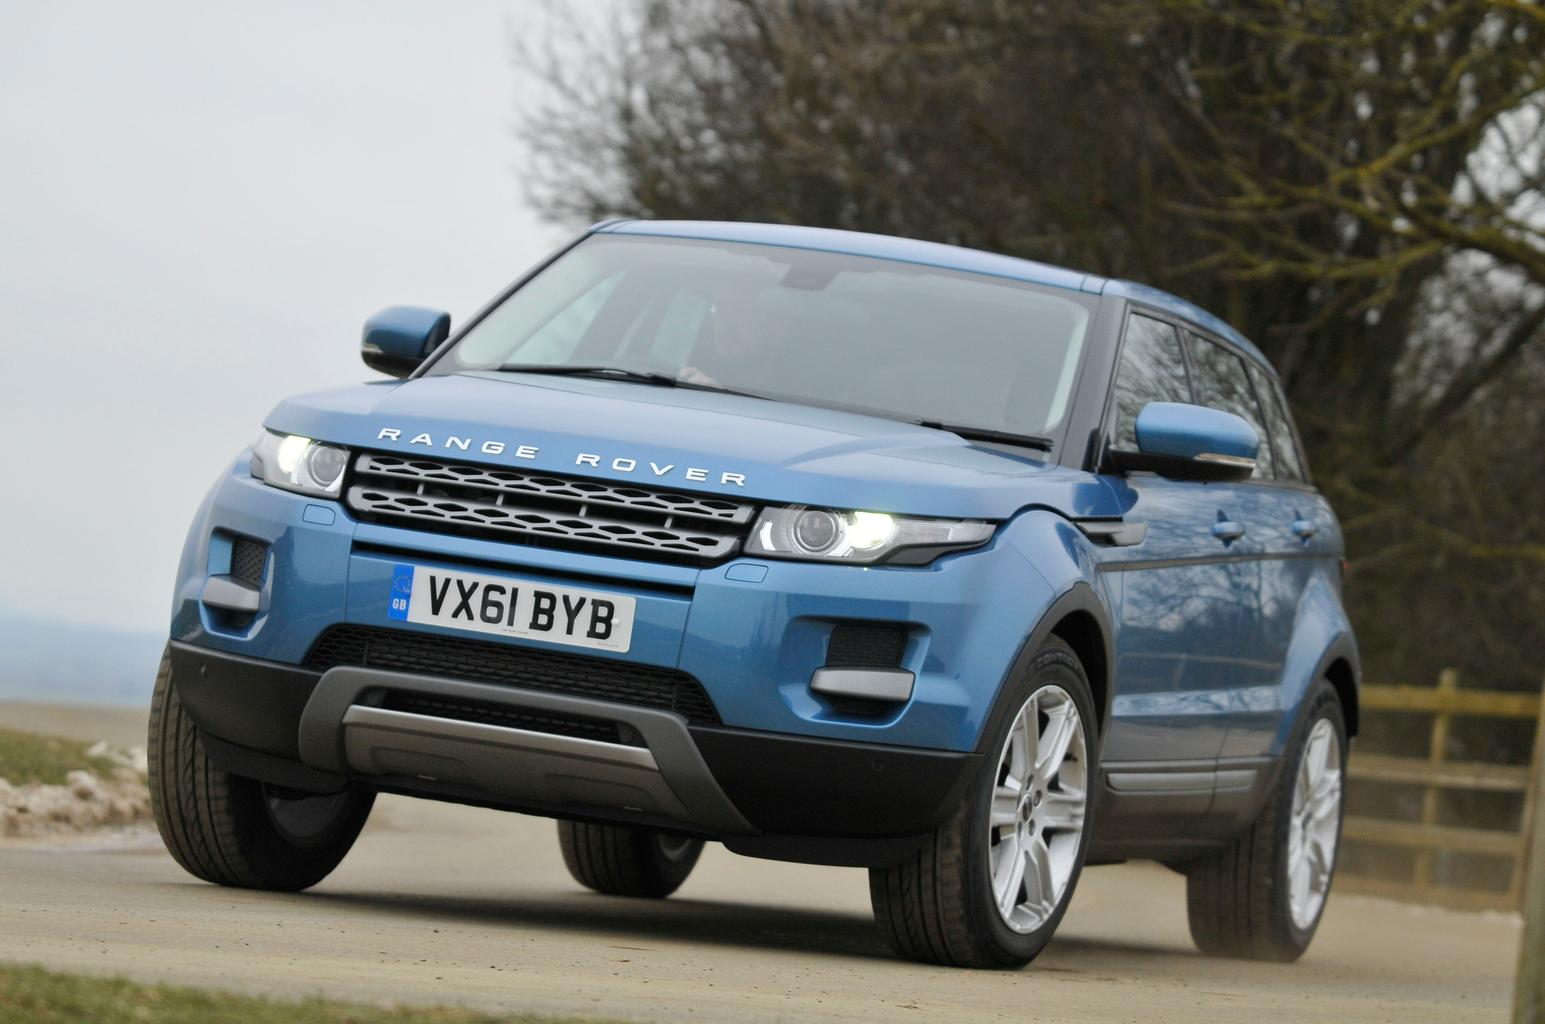 Used test: Audi A5 Sportback vs Chevrolet Volt vs Range Rover Evoque